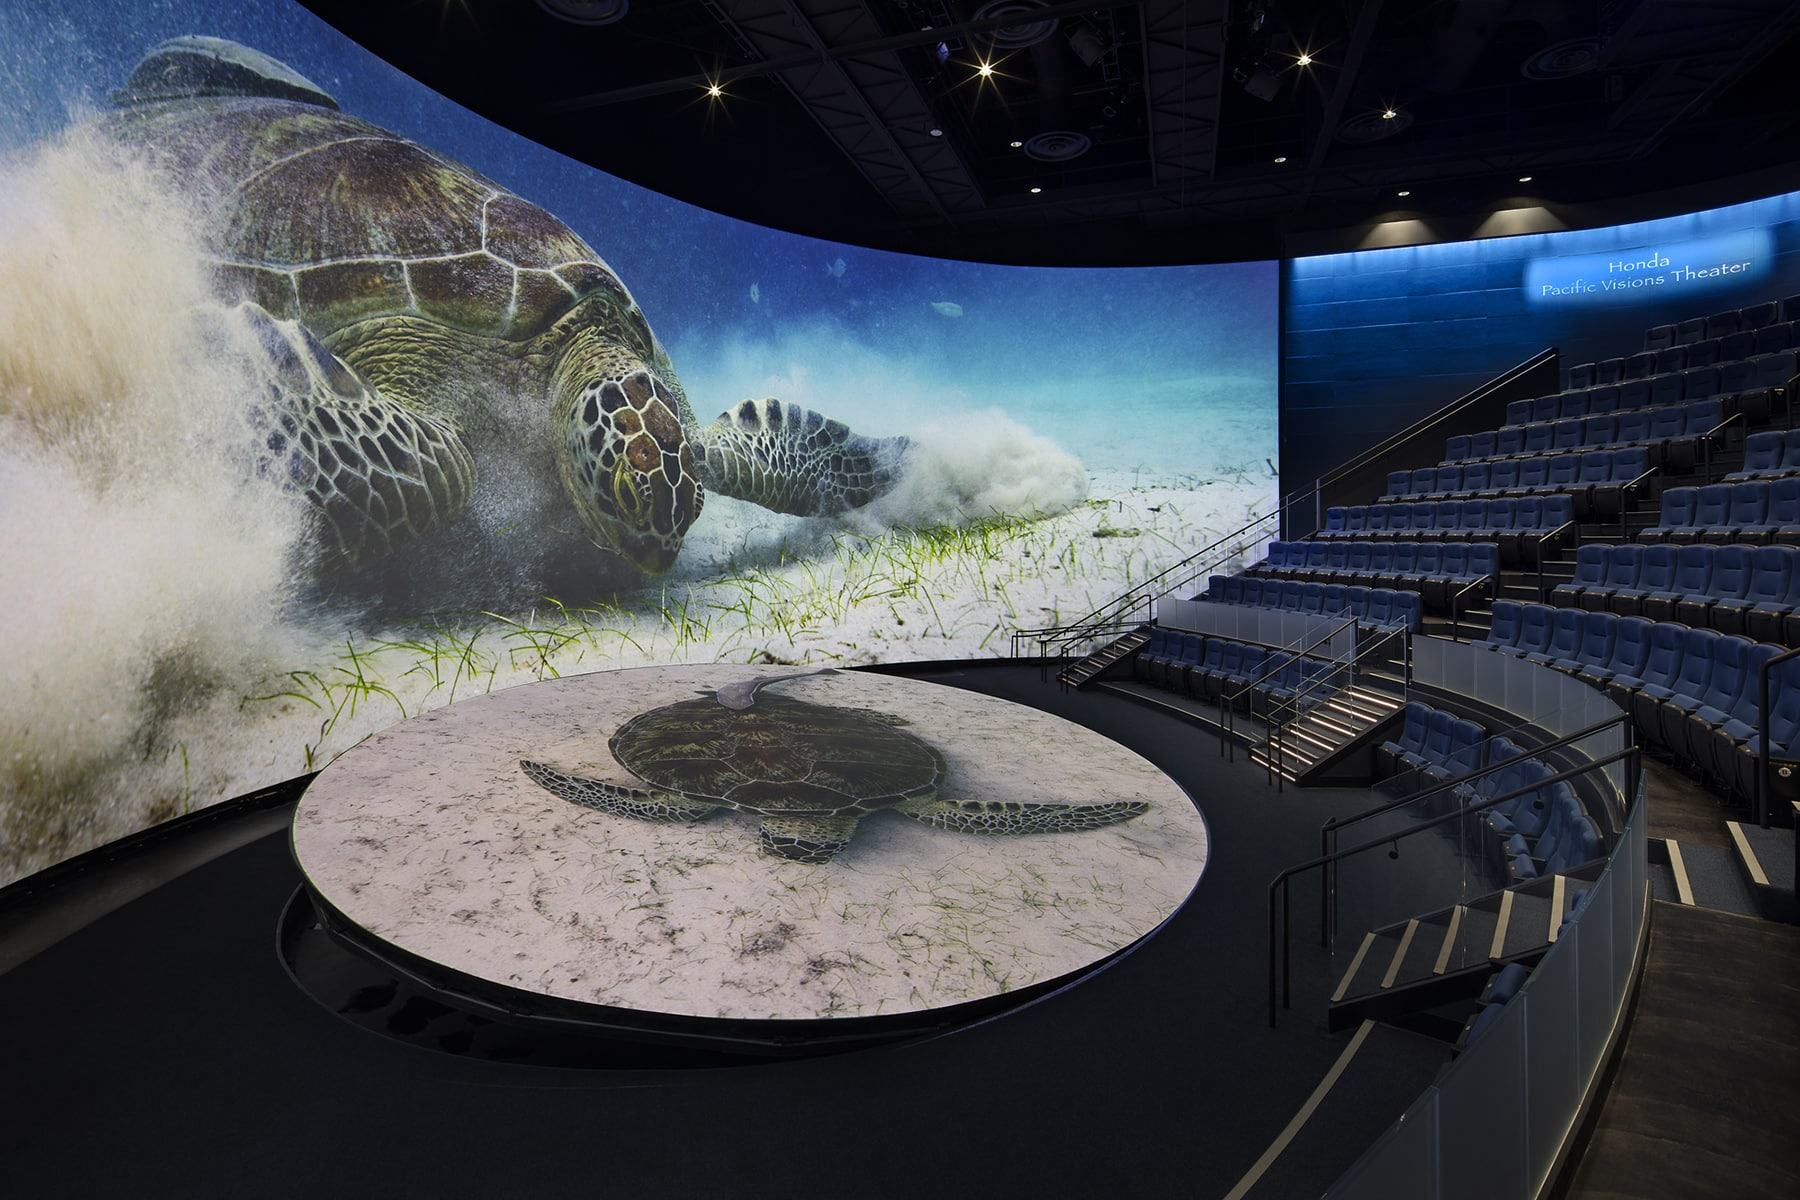 Virtual Touch technology brings Pacific Visions to a more diverse